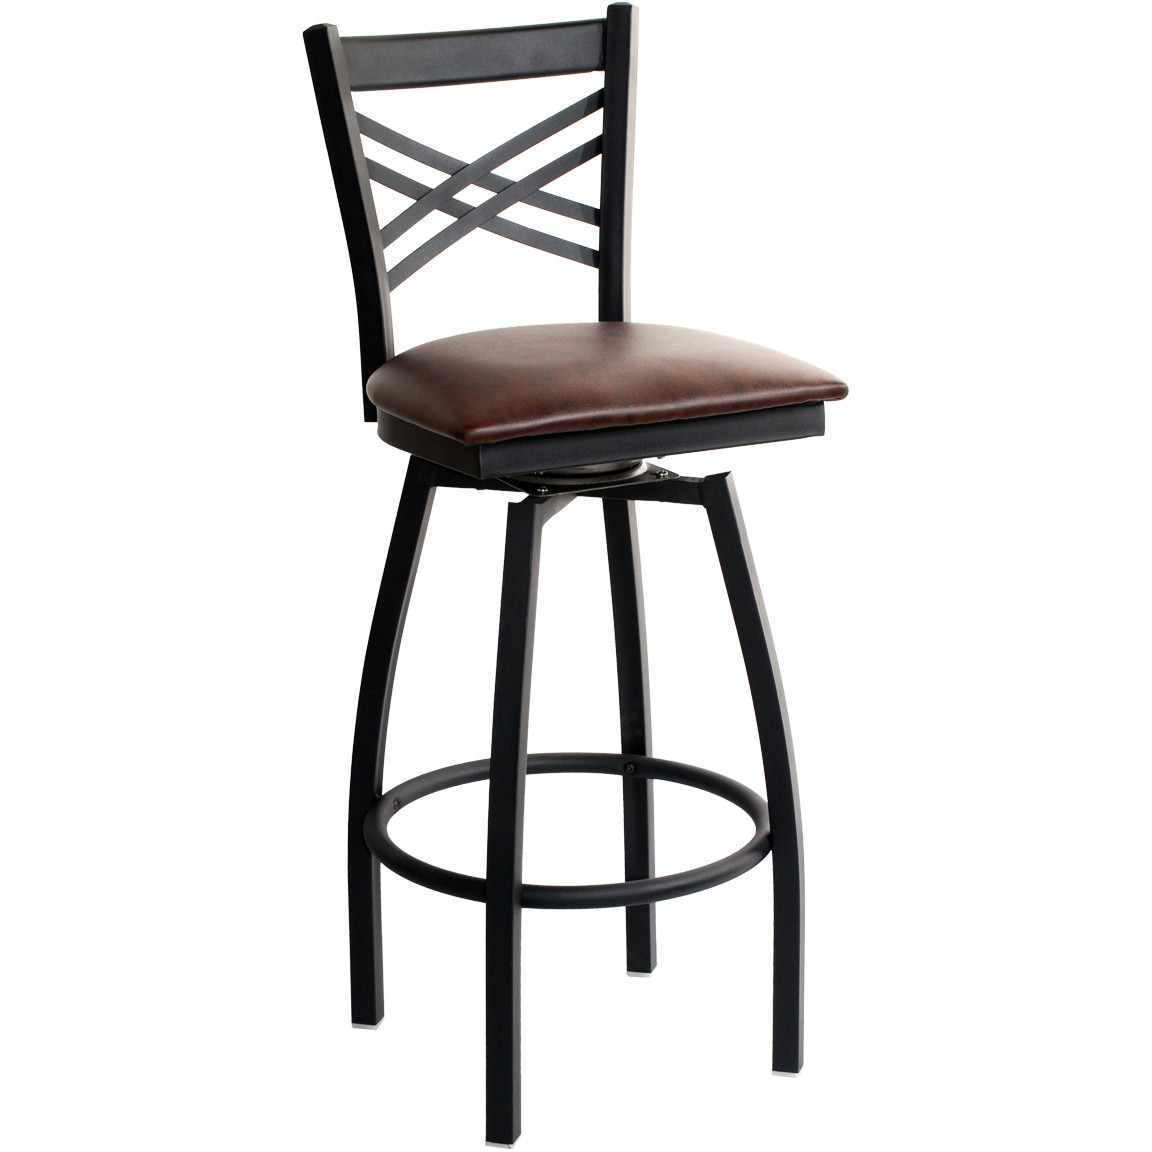 Swivel x back metal bar stool for Counter stools with backs